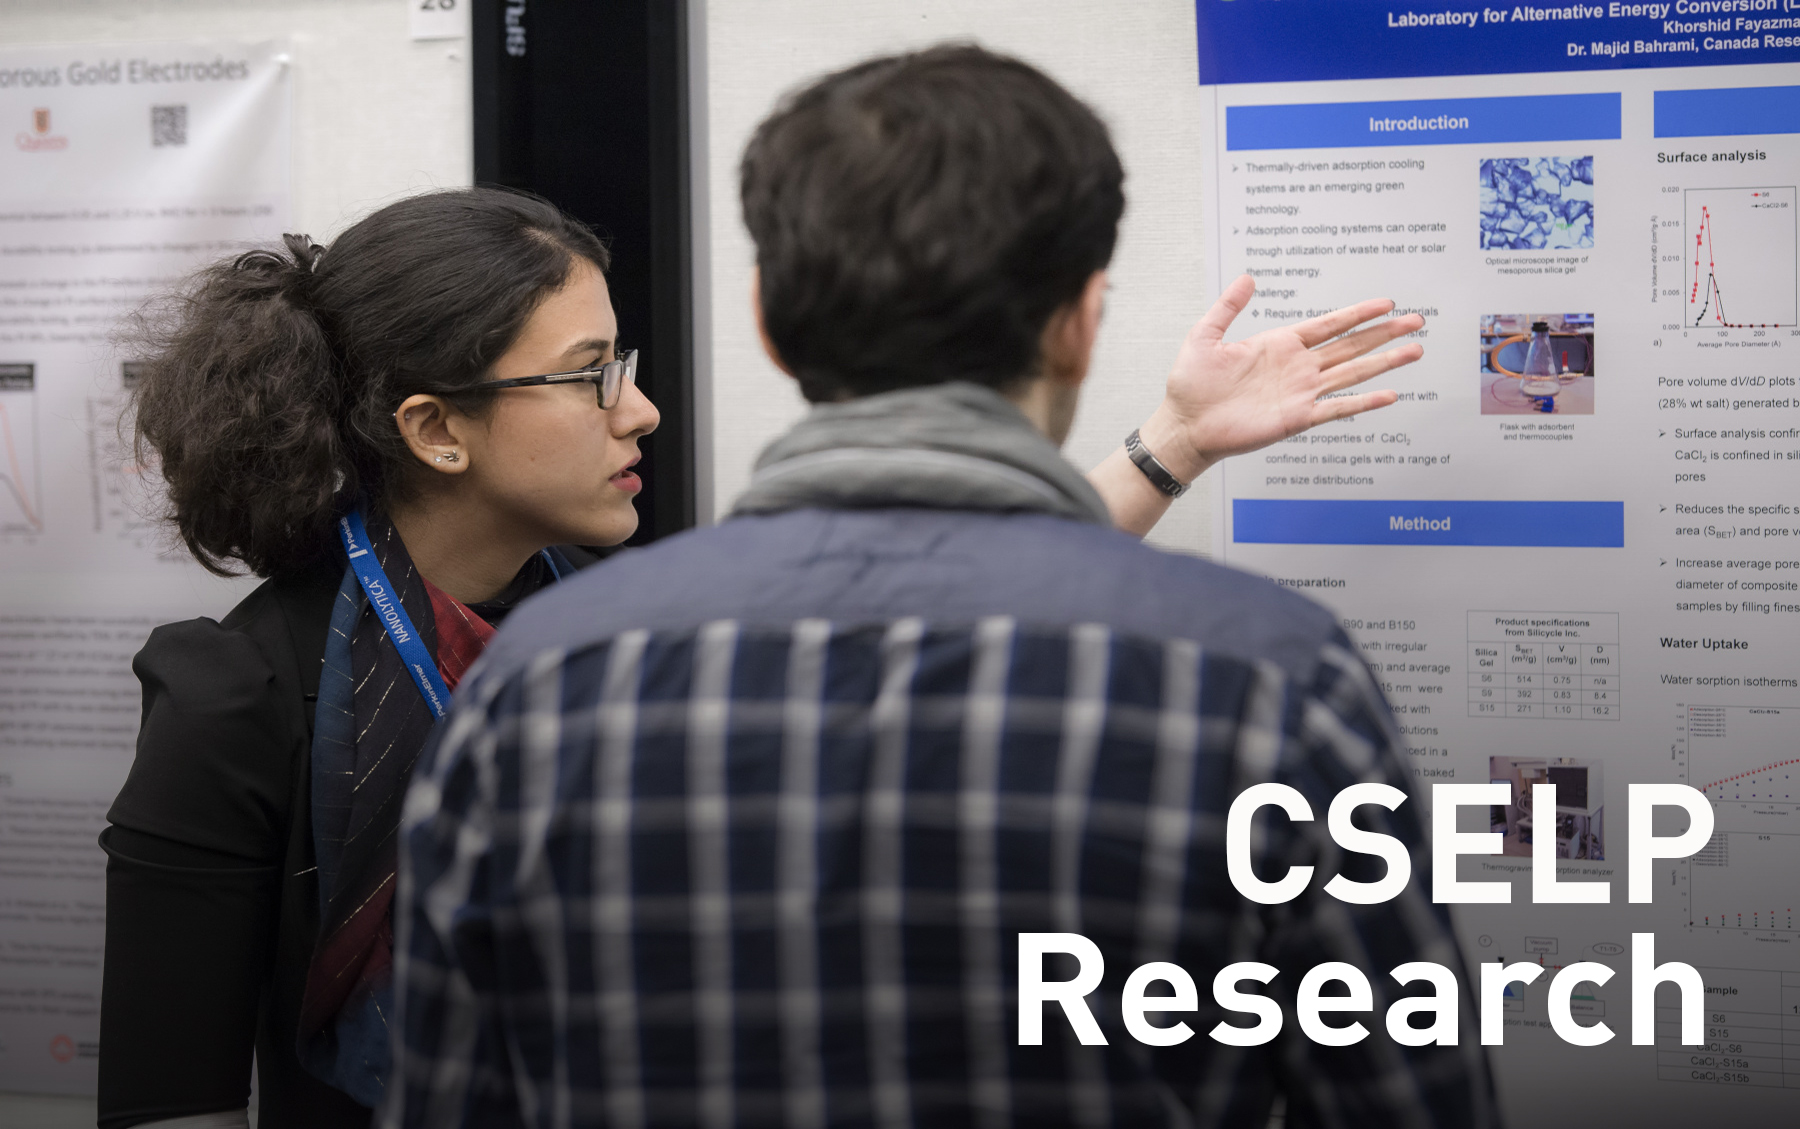 CSELP Research